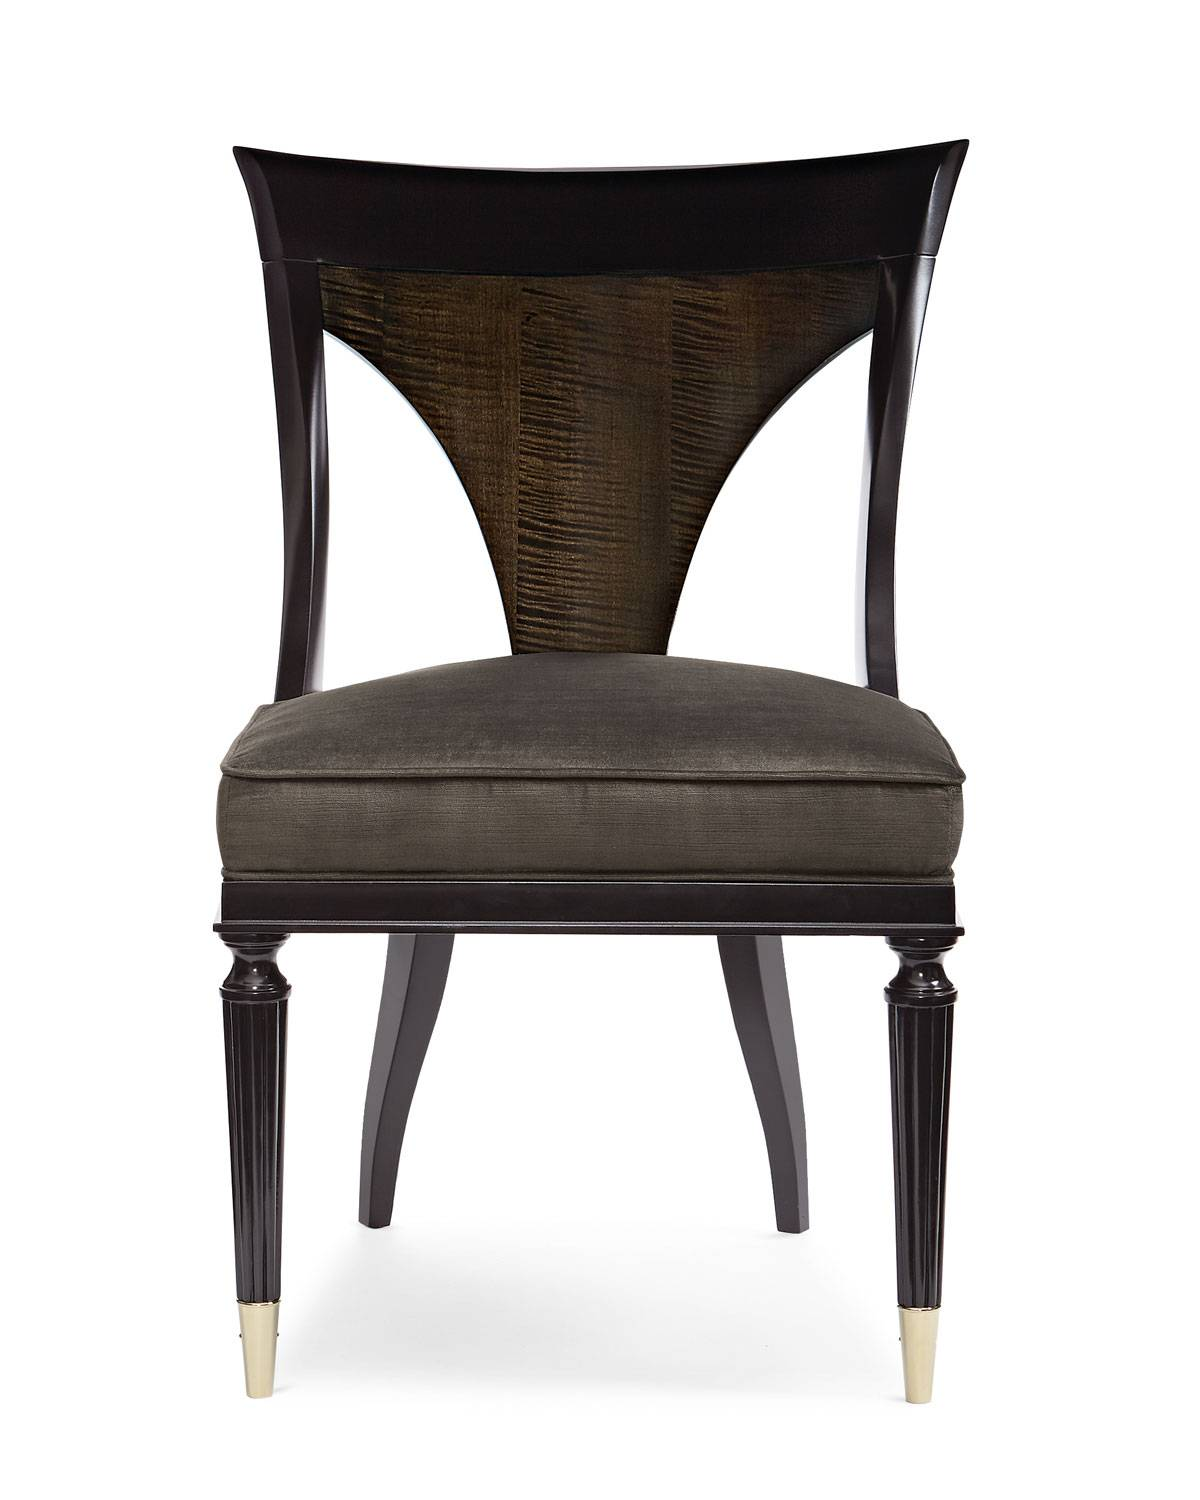 caracole Keeping with Tradition Dining Chair